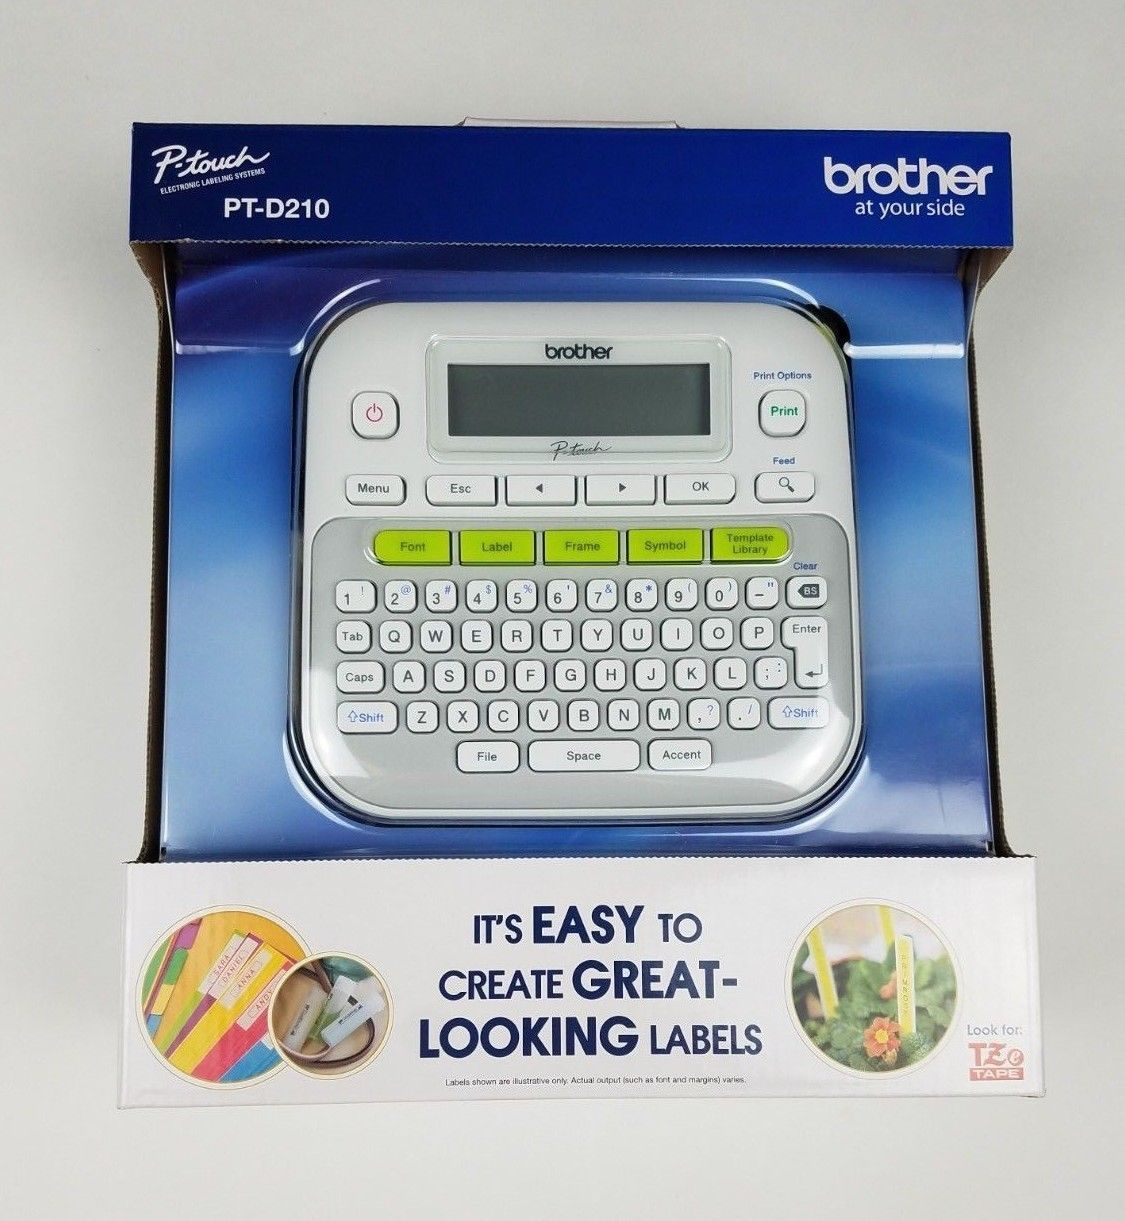 Brother PTD210 P-Touch Easy Compact Label Maker